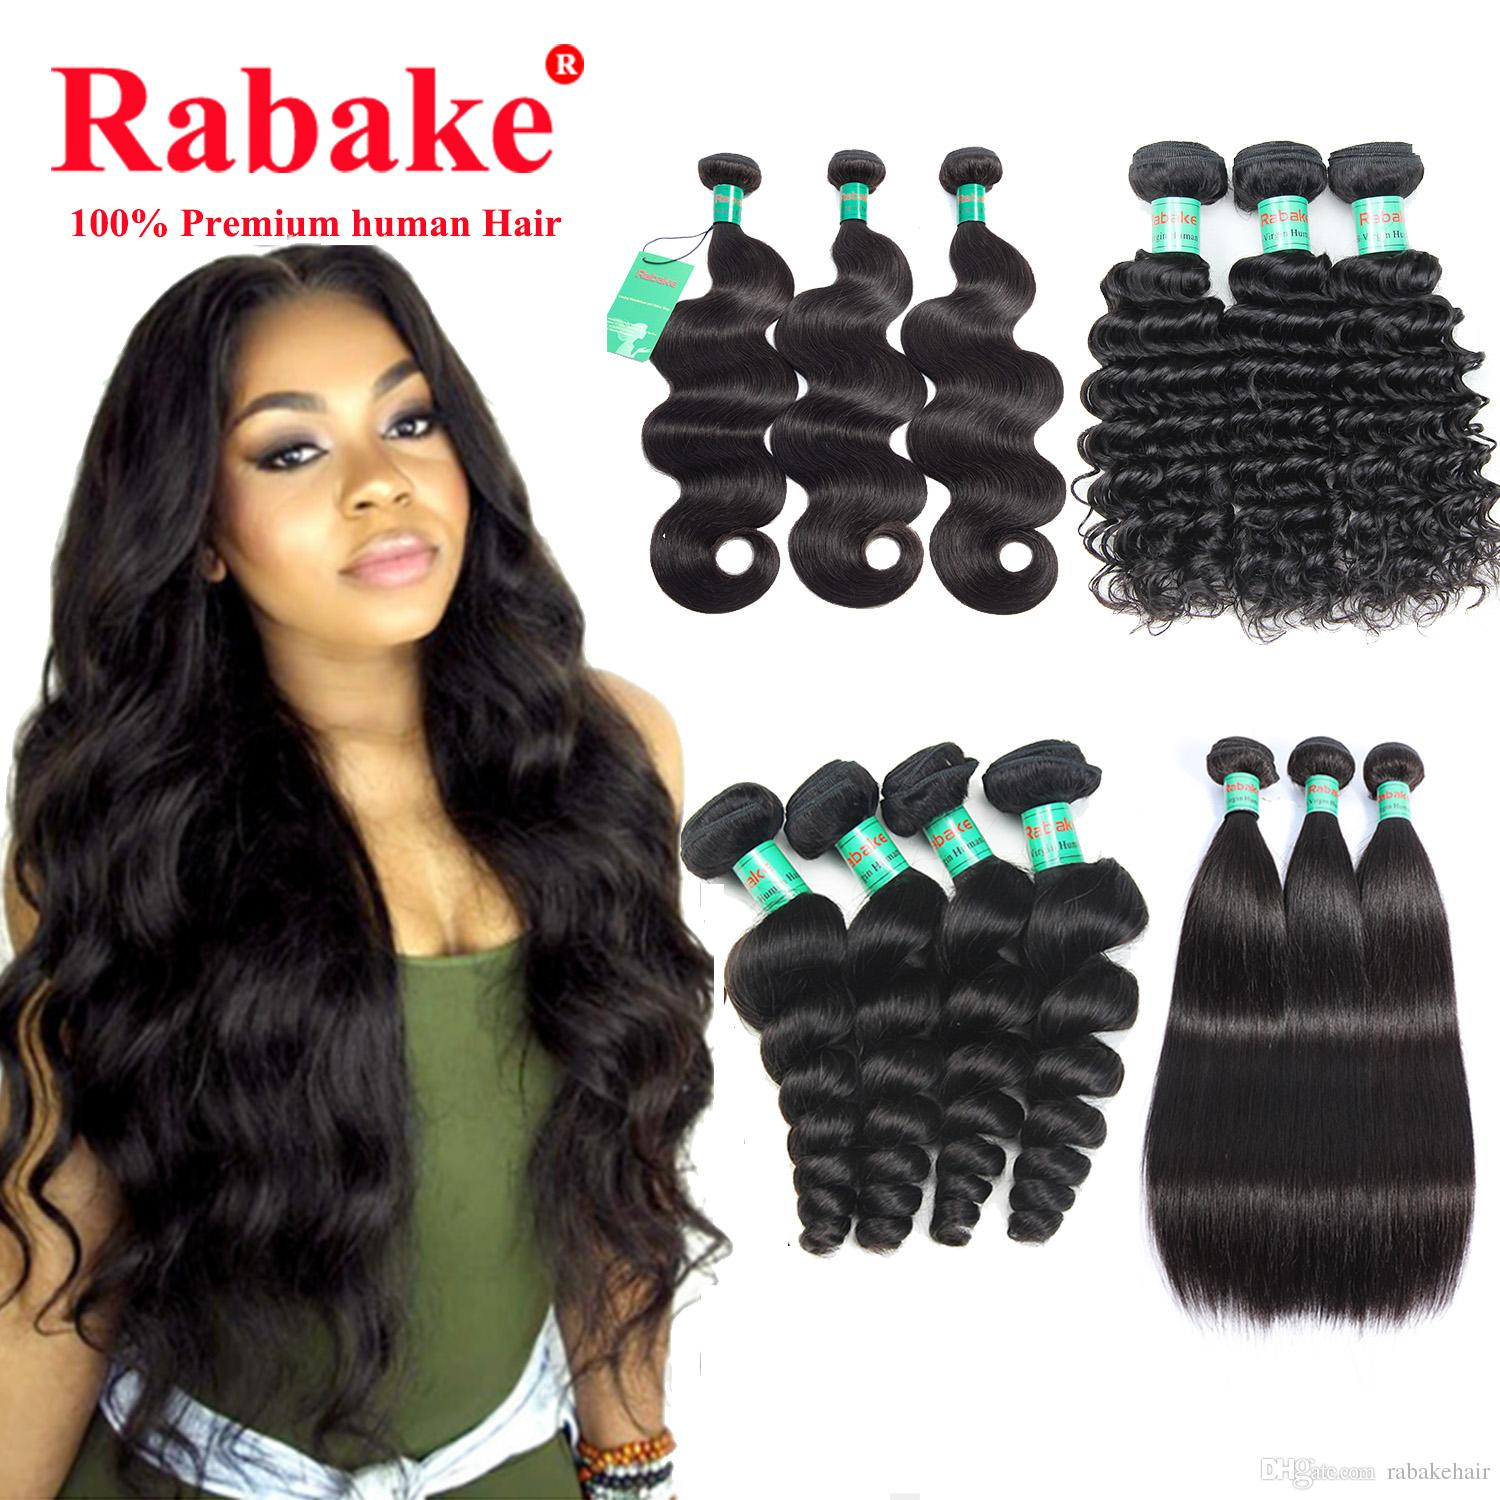 3 or 4 Brazilian Virgin Human Hair Weave